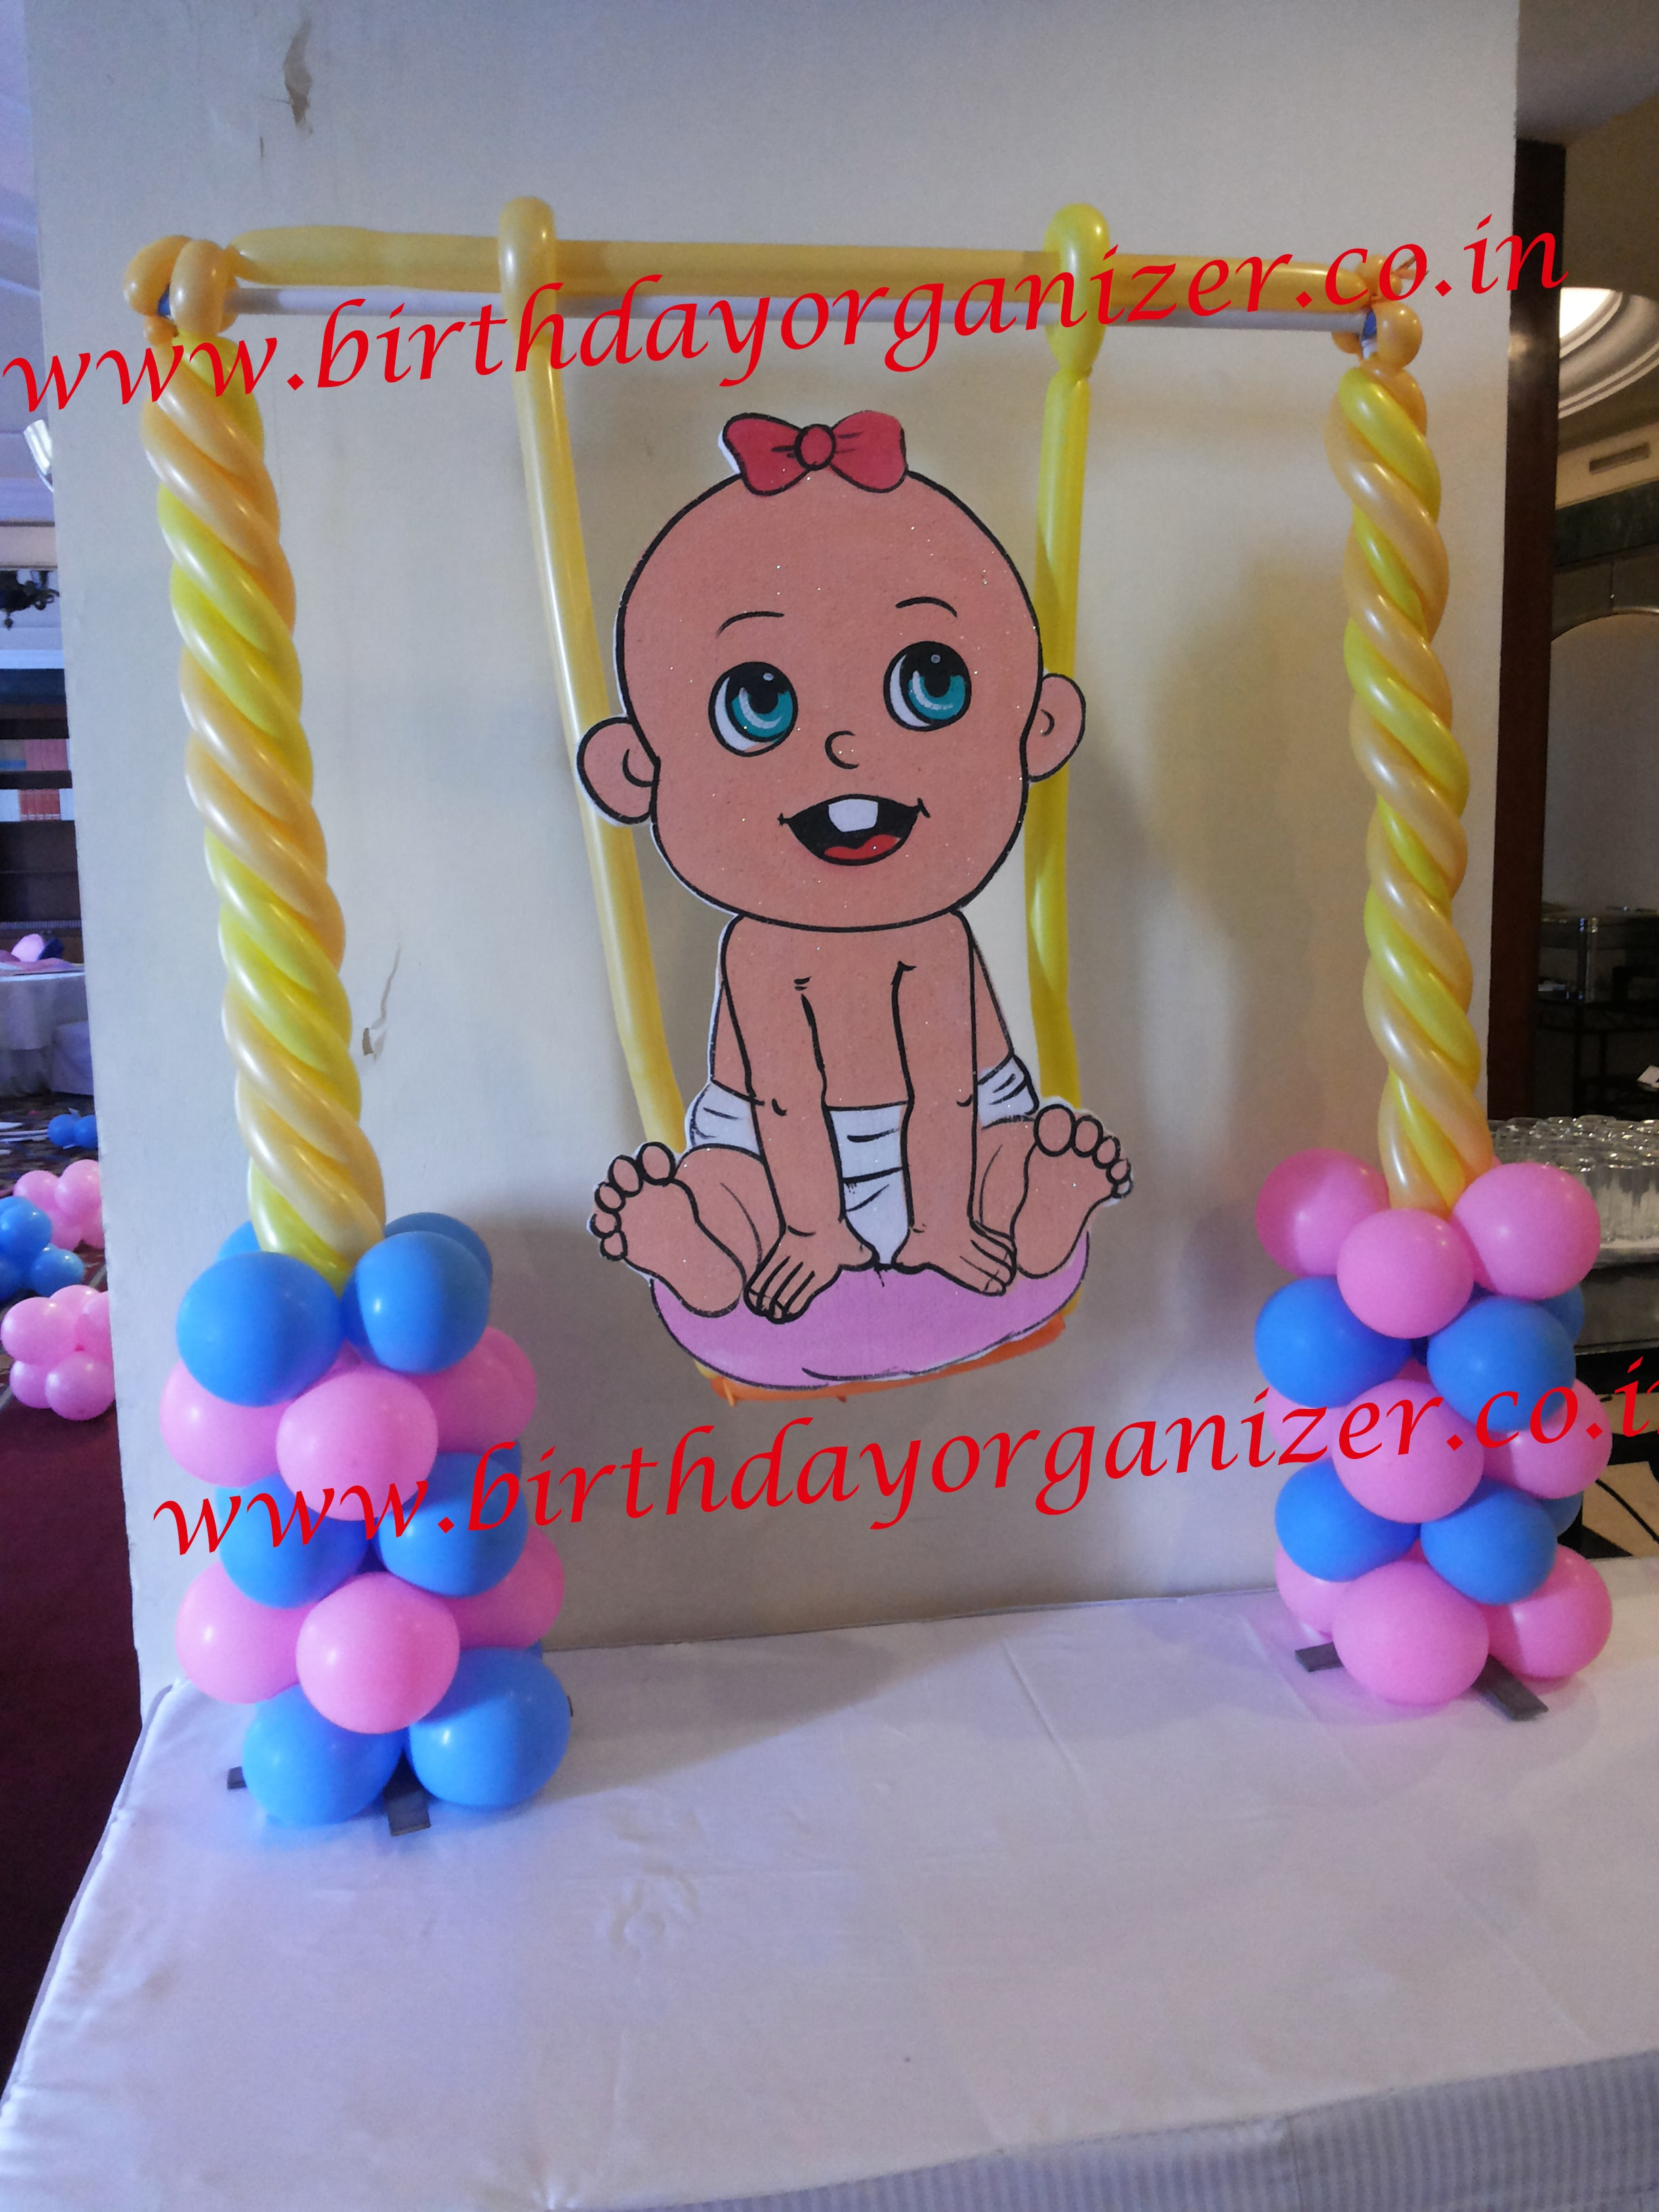 Baby shower baby frame in noida , Baby shower baby work in delhi, Baby shower baby frame decoration in noida delhi ncr, Baby shower baby frame ideas in delhi noida ncr gurgaon